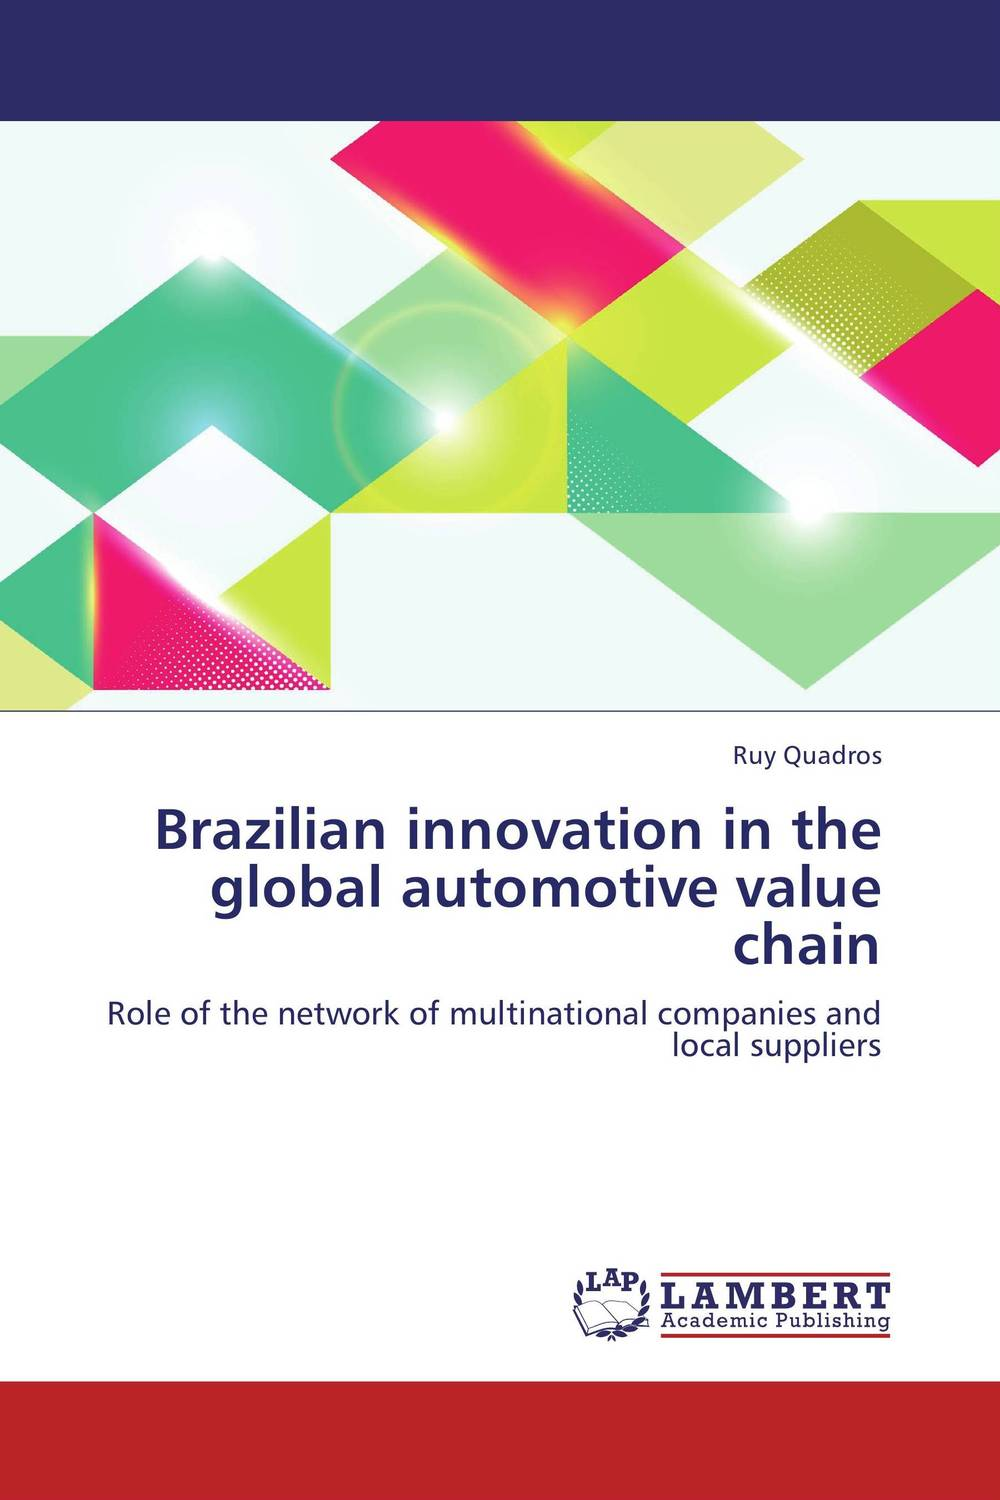 Brazilian innovation in the global automotive value chain duncan bruce the dream cafe lessons in the art of radical innovation